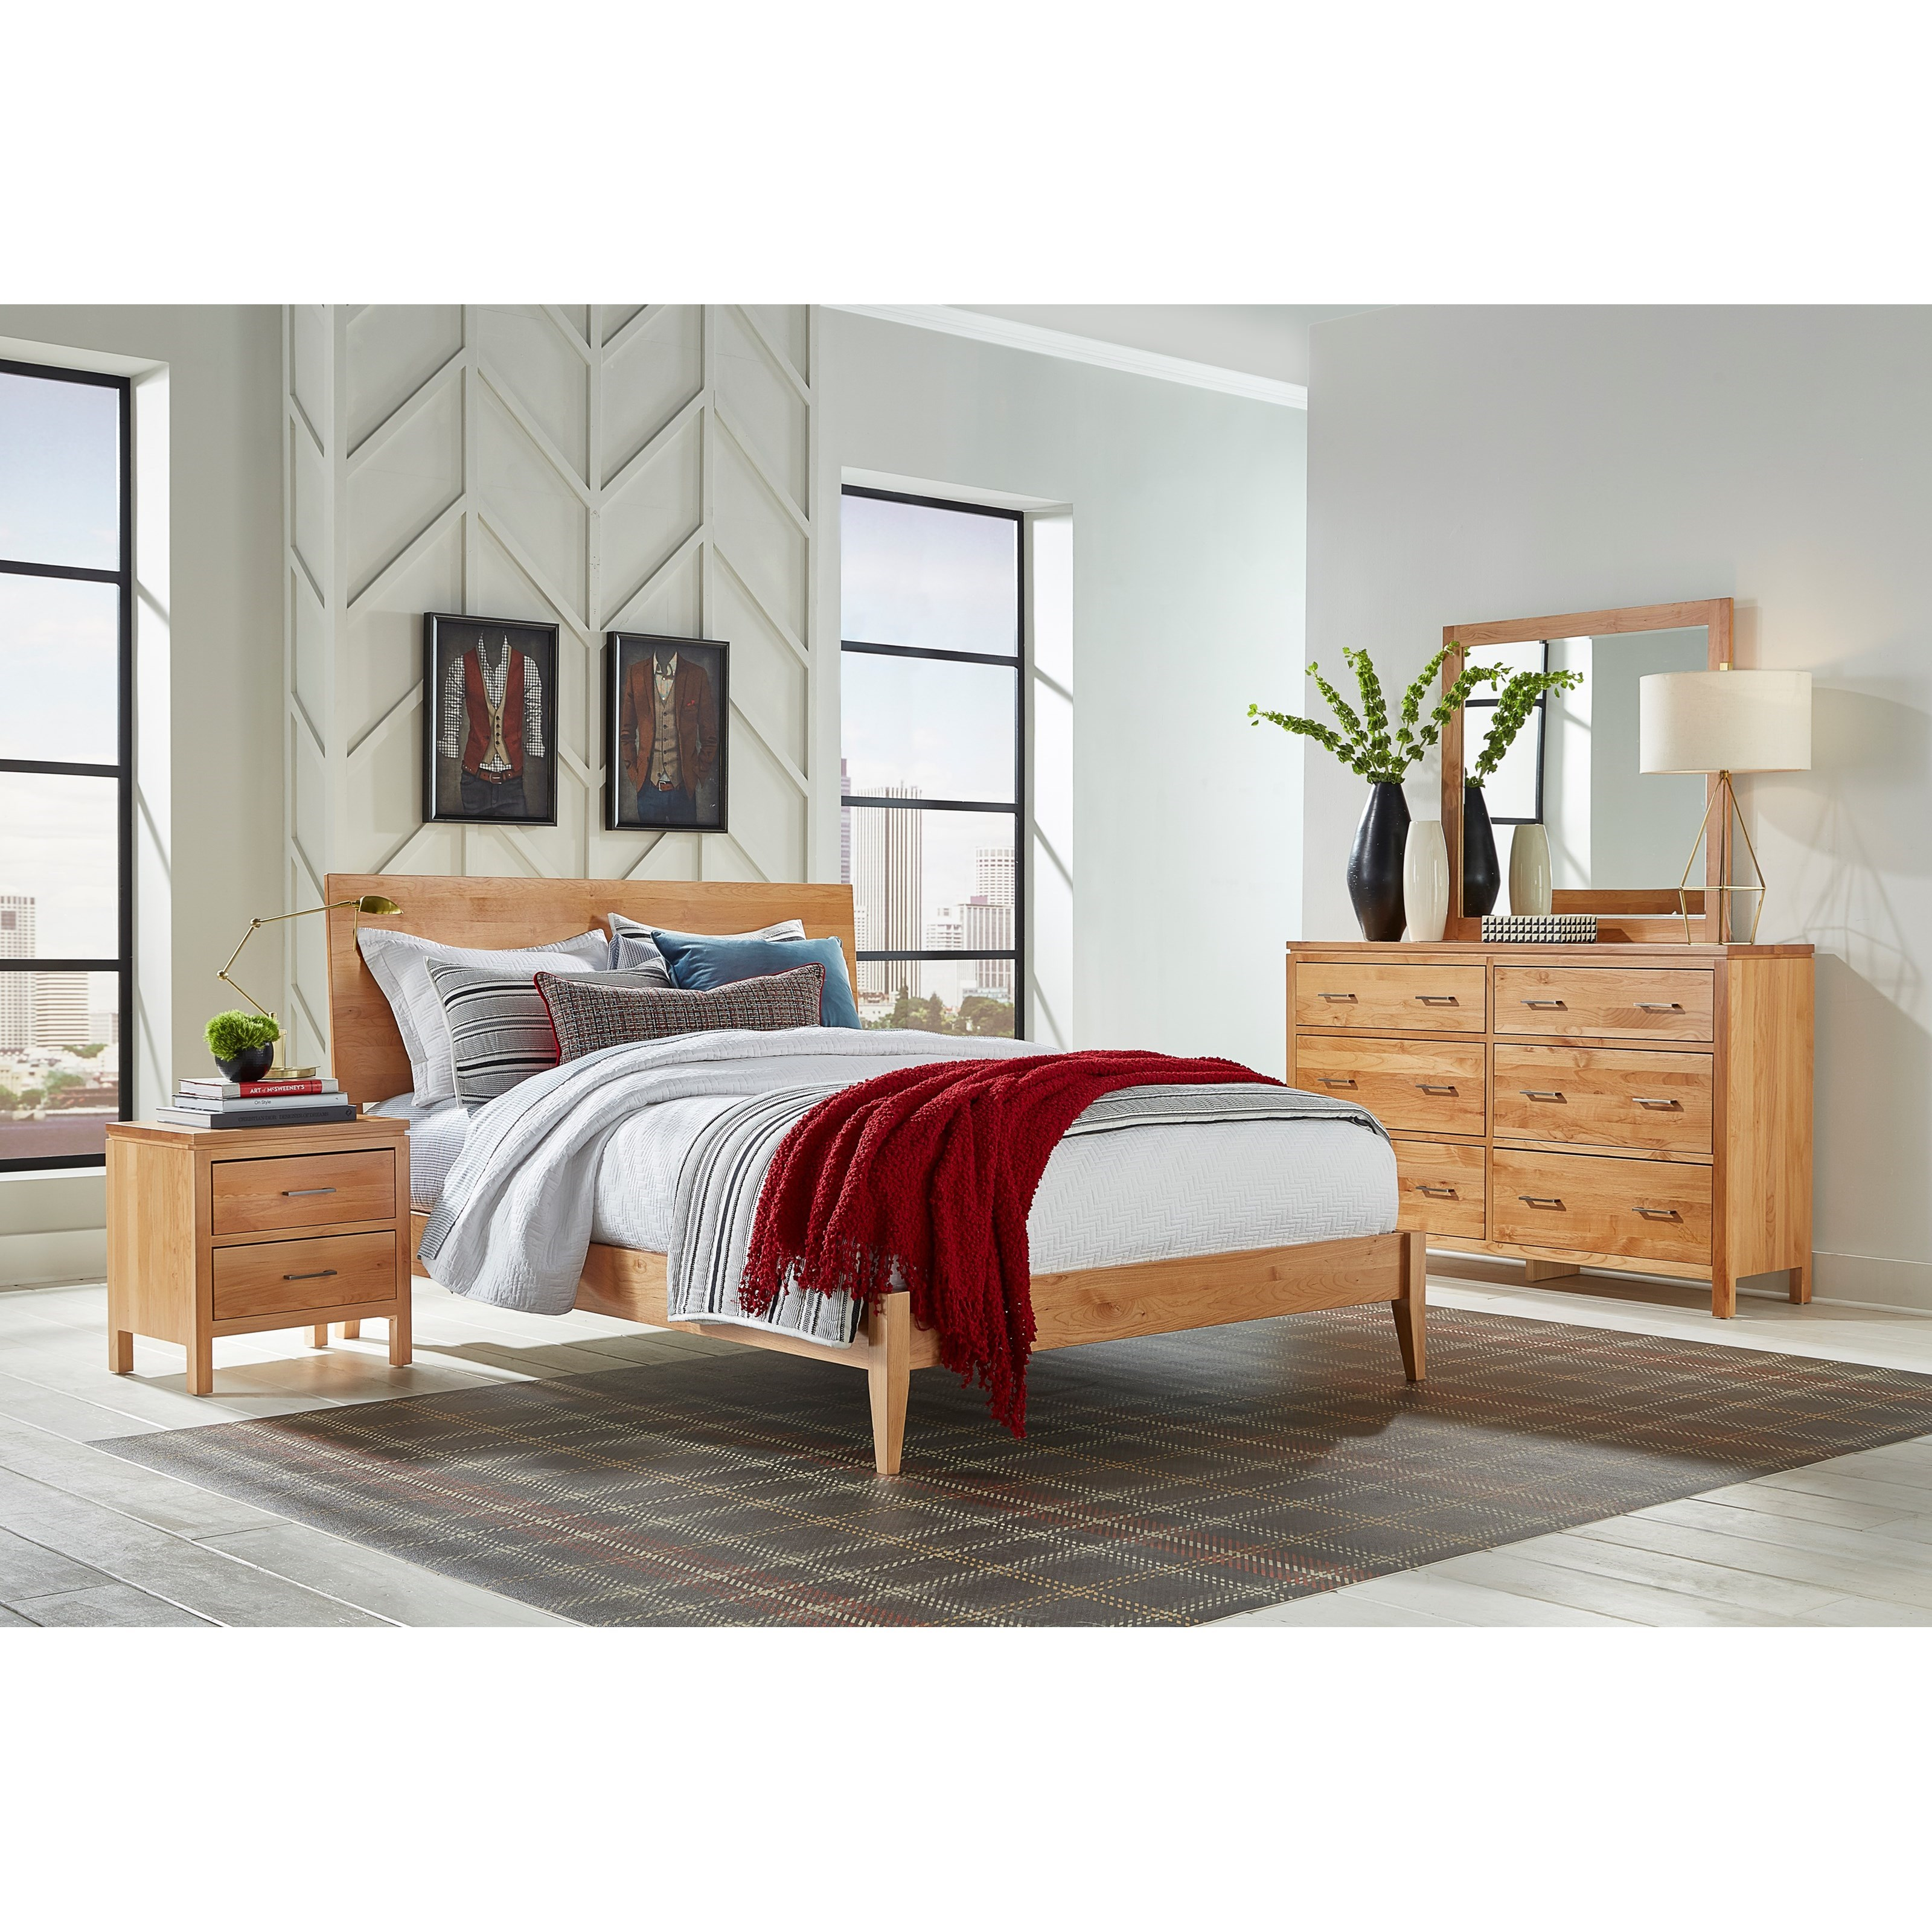 Archbold Furniture 2 West Bedroom Group Belfort Furniture Bedroom Groups